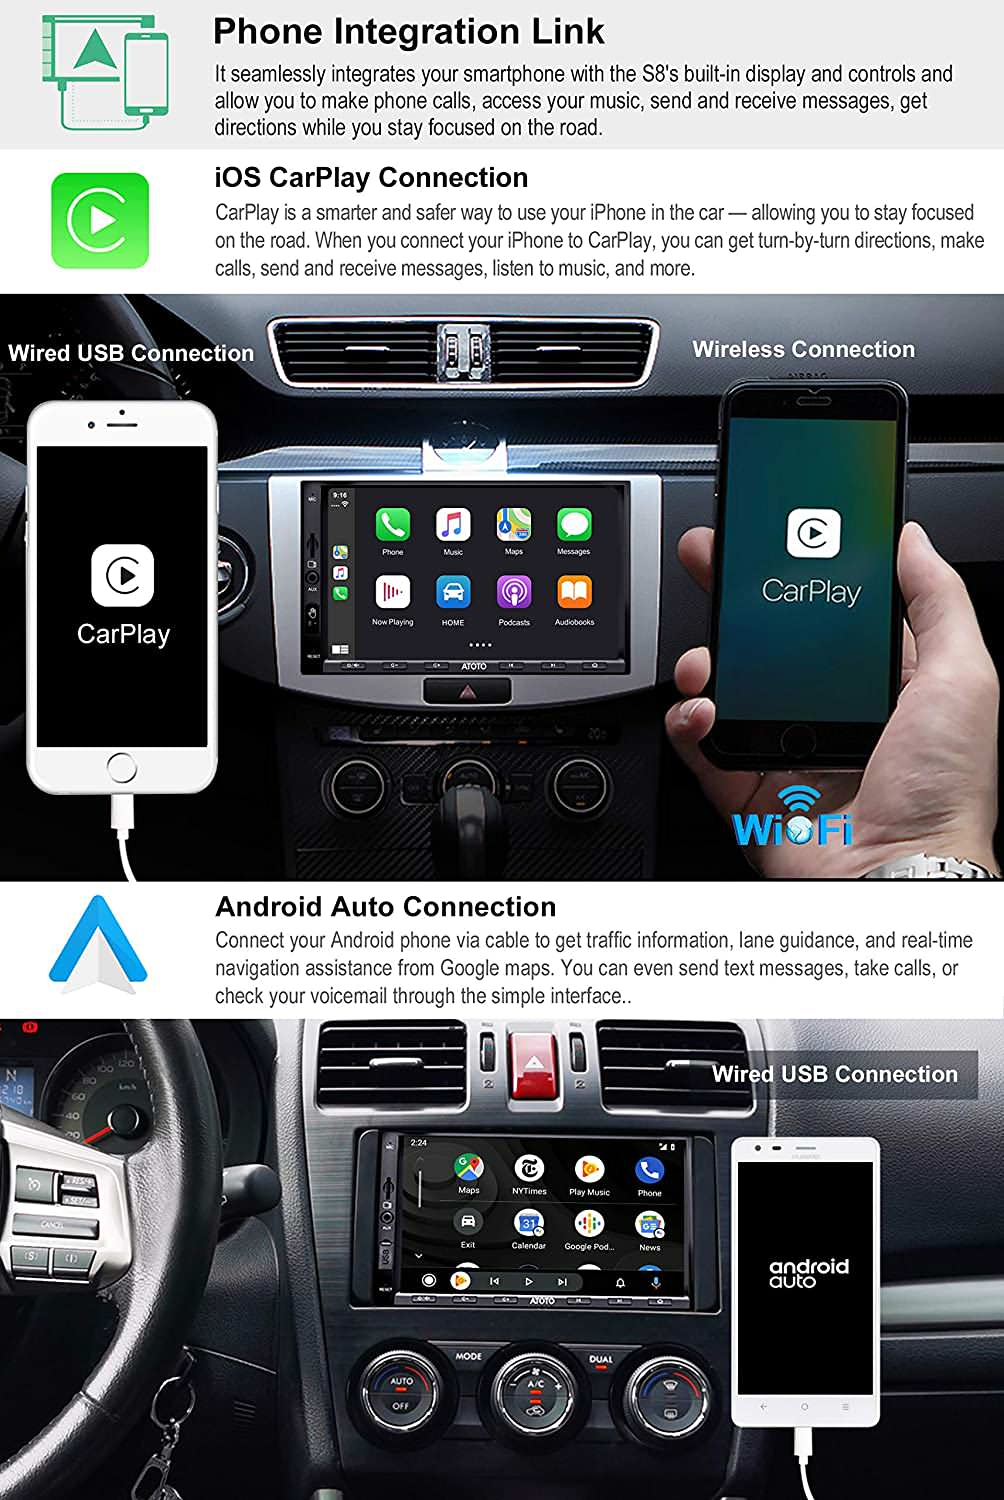 S8 Standard S8G2A71S ATOTO S8 Android Car Stereo Navi System Powerful Soc DSP Tuning Privacy Protect HD Rear Cam in Support 512GB SD /& More Dual Bluetooth w//aptX,Voice Assistant IPS Display